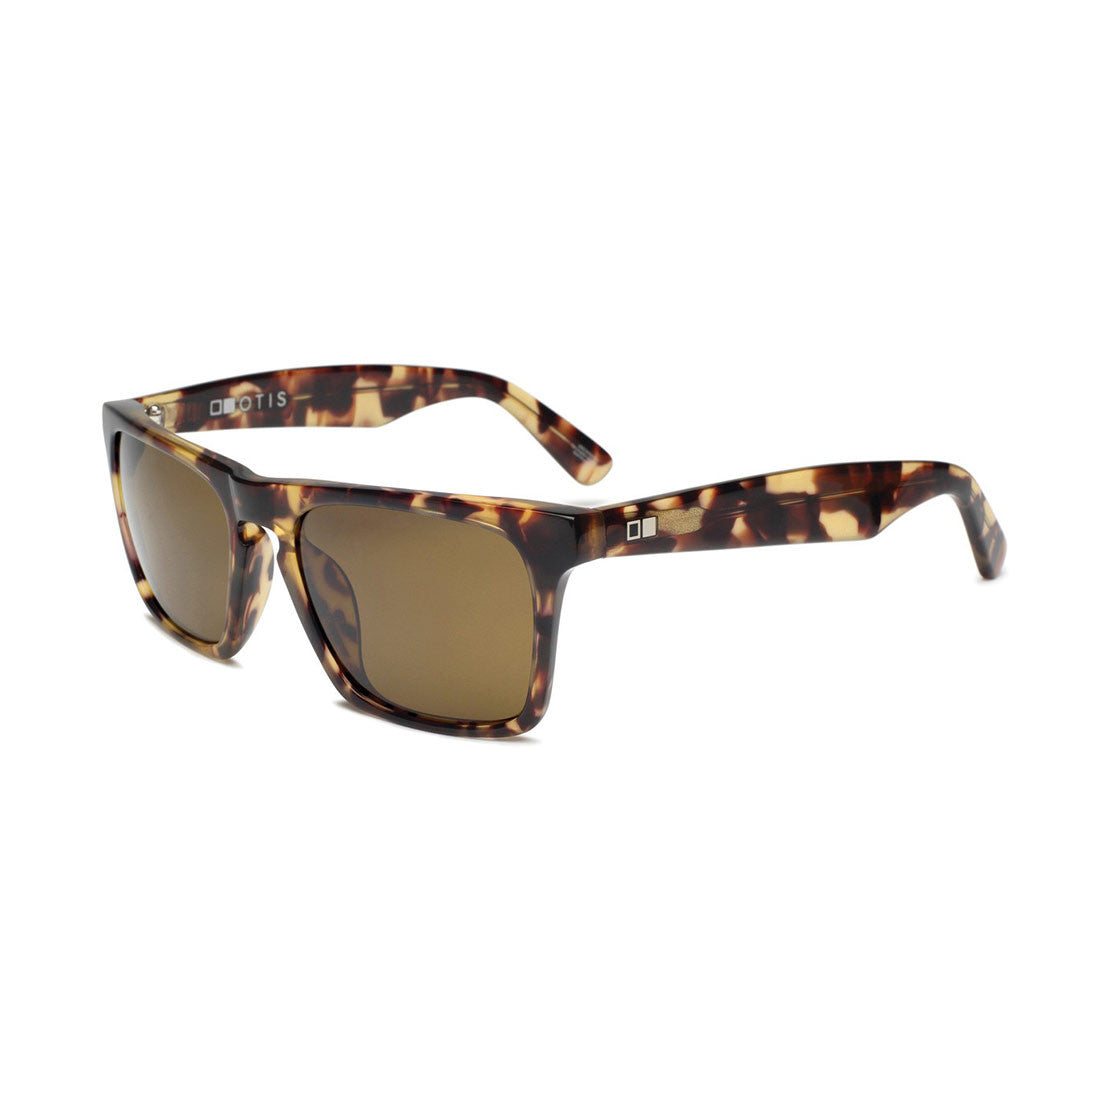 Otis Reckless Abandon Sunglasses (Tort/Tropical Brown)